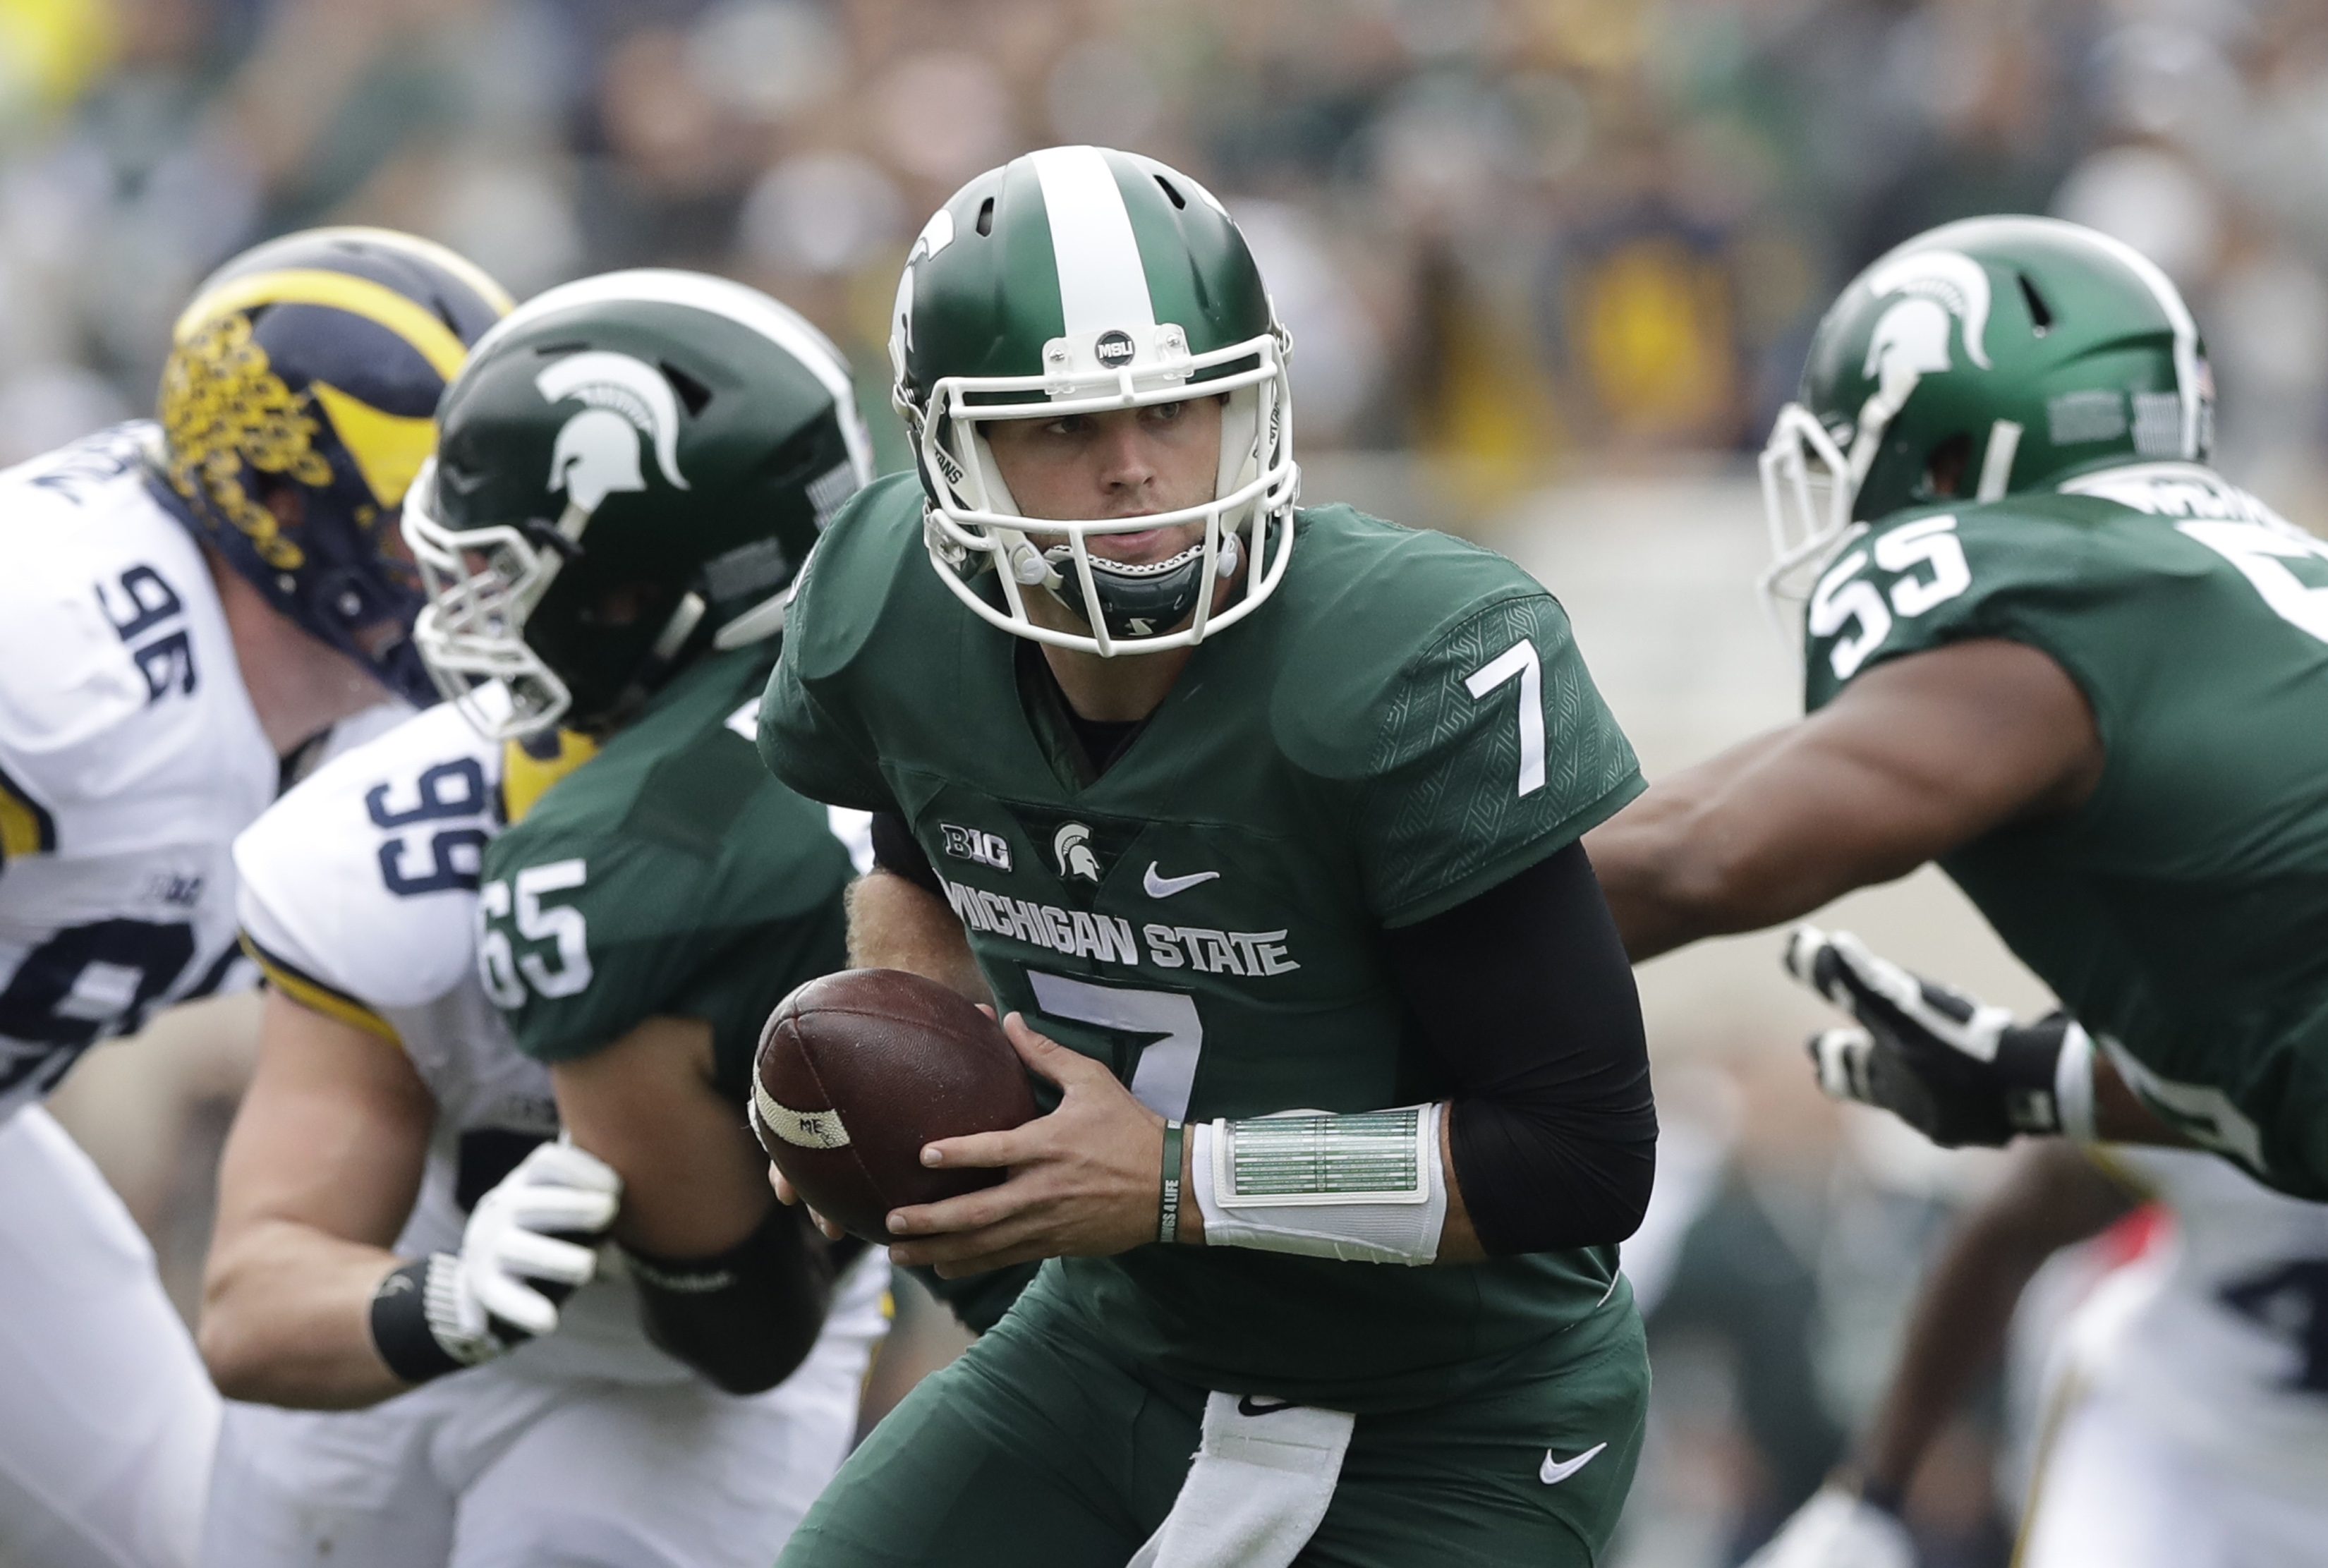 Michigan State quarterback Tyler O'Connor (7) gets ready to hands off the ball during the first half of an NCAA college football game against Michigan, Saturday, Oct. 29, 2016, in East Lansing, Mich. (AP Photo/Carlos Osorio)